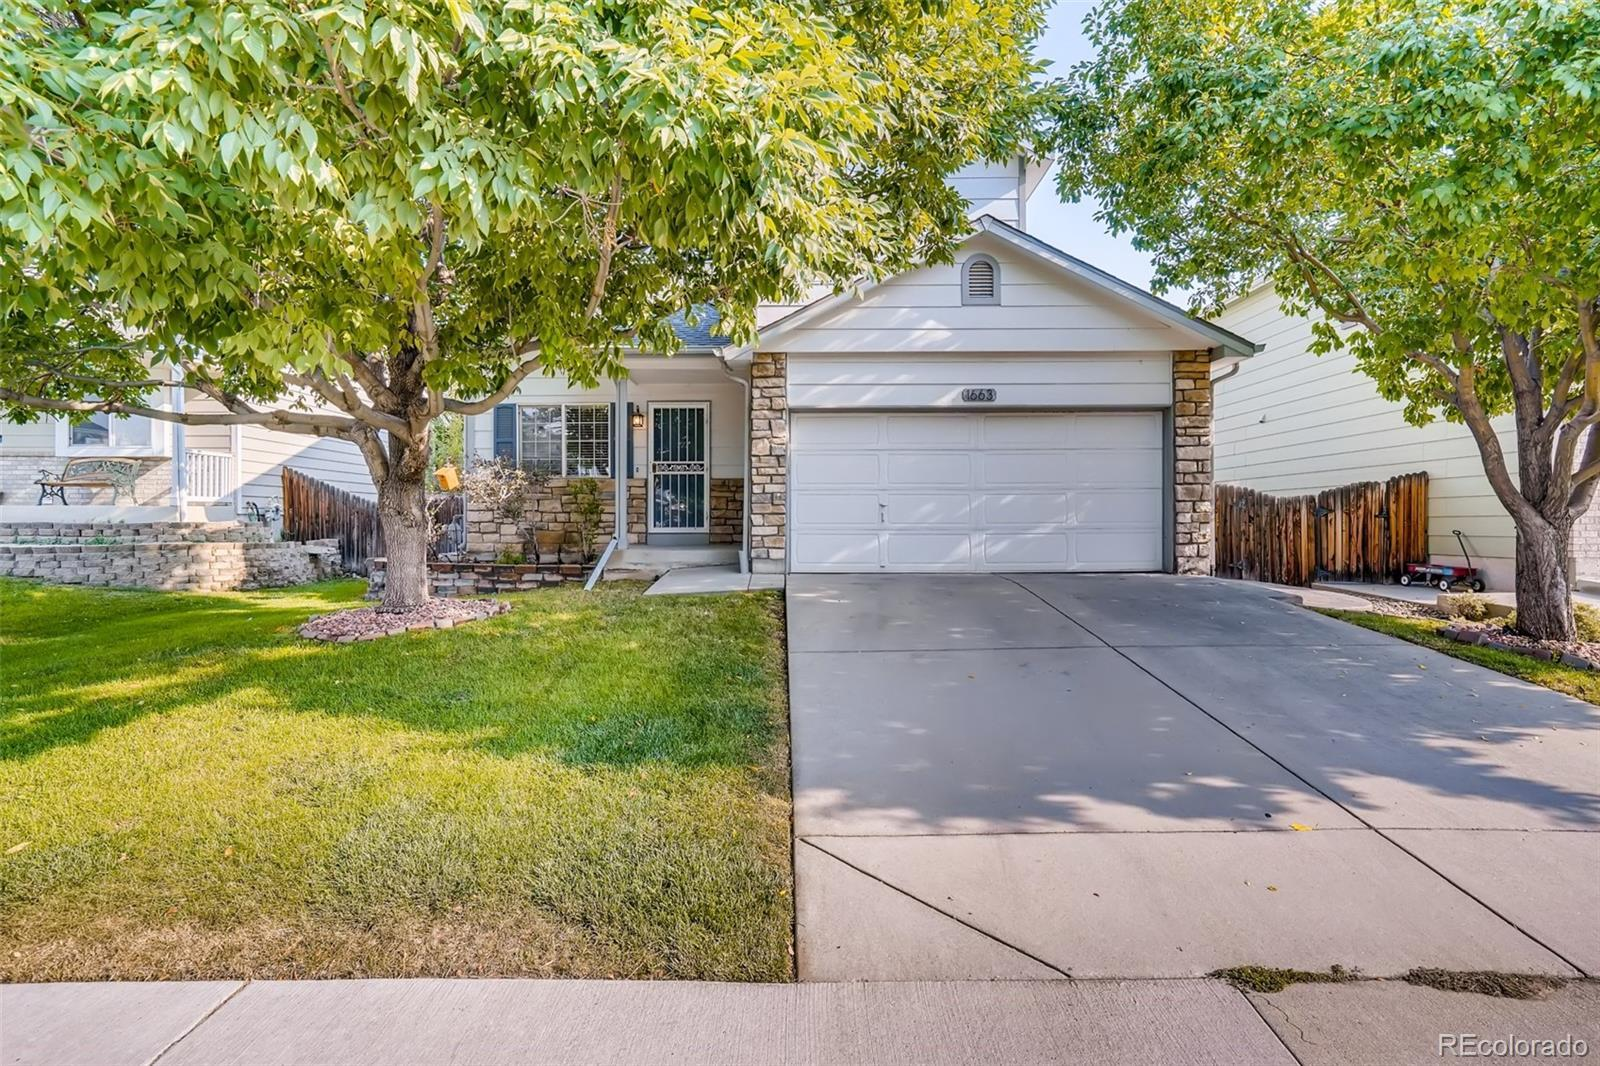 1663 W 135th Way, Westminster, CO 80234 - #: 5077819